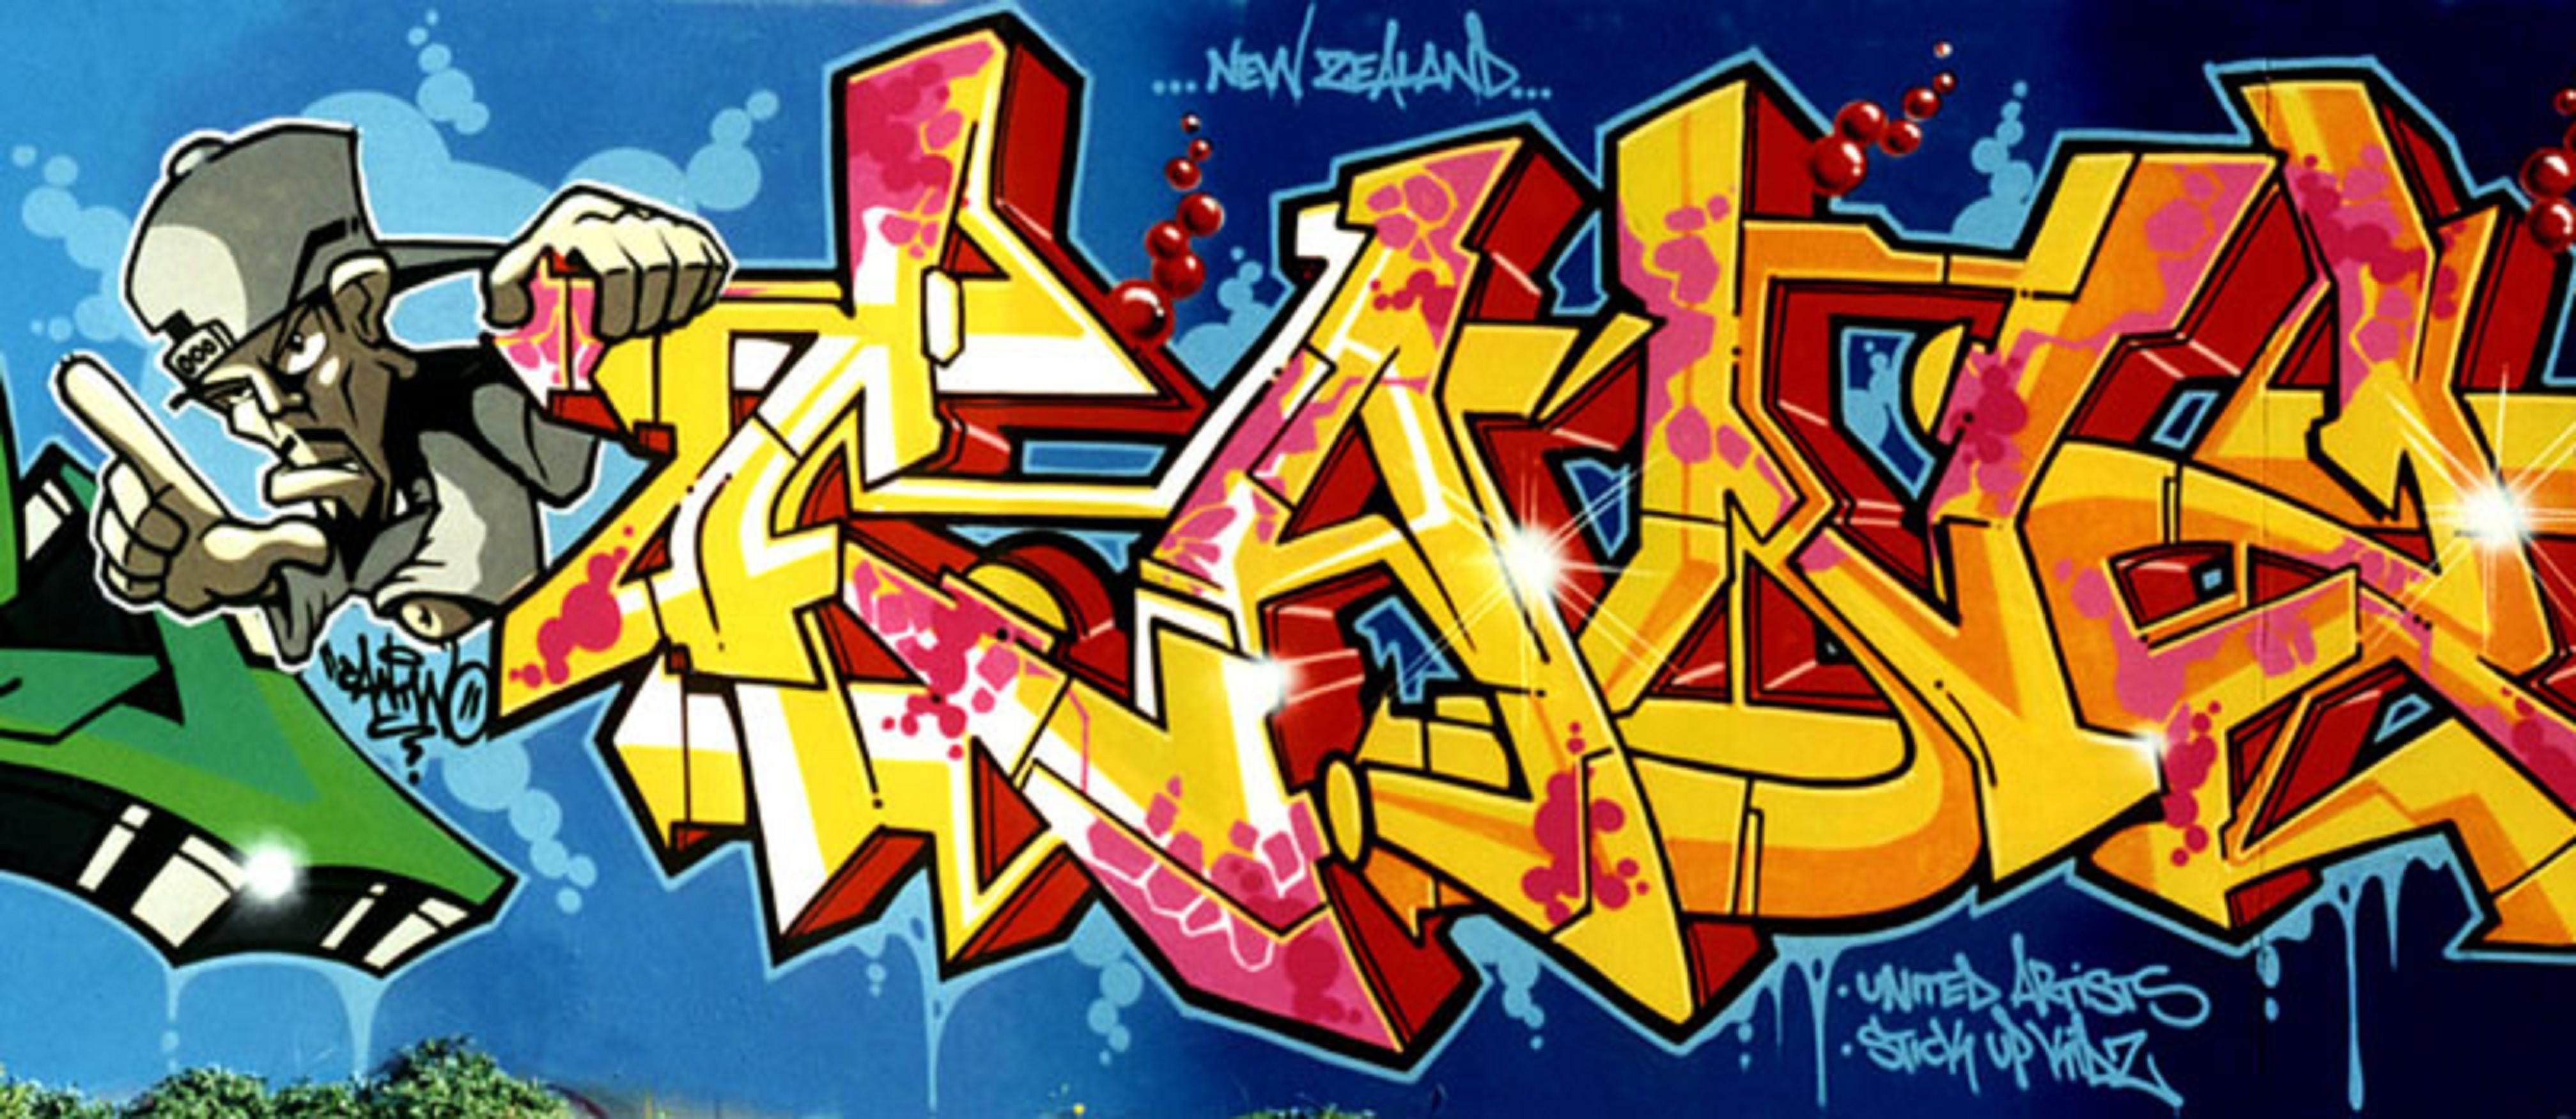 Graffiti creator online android - Free 3d Wallpapers Origin Graffiti Art For Android Tablet Wallpaper